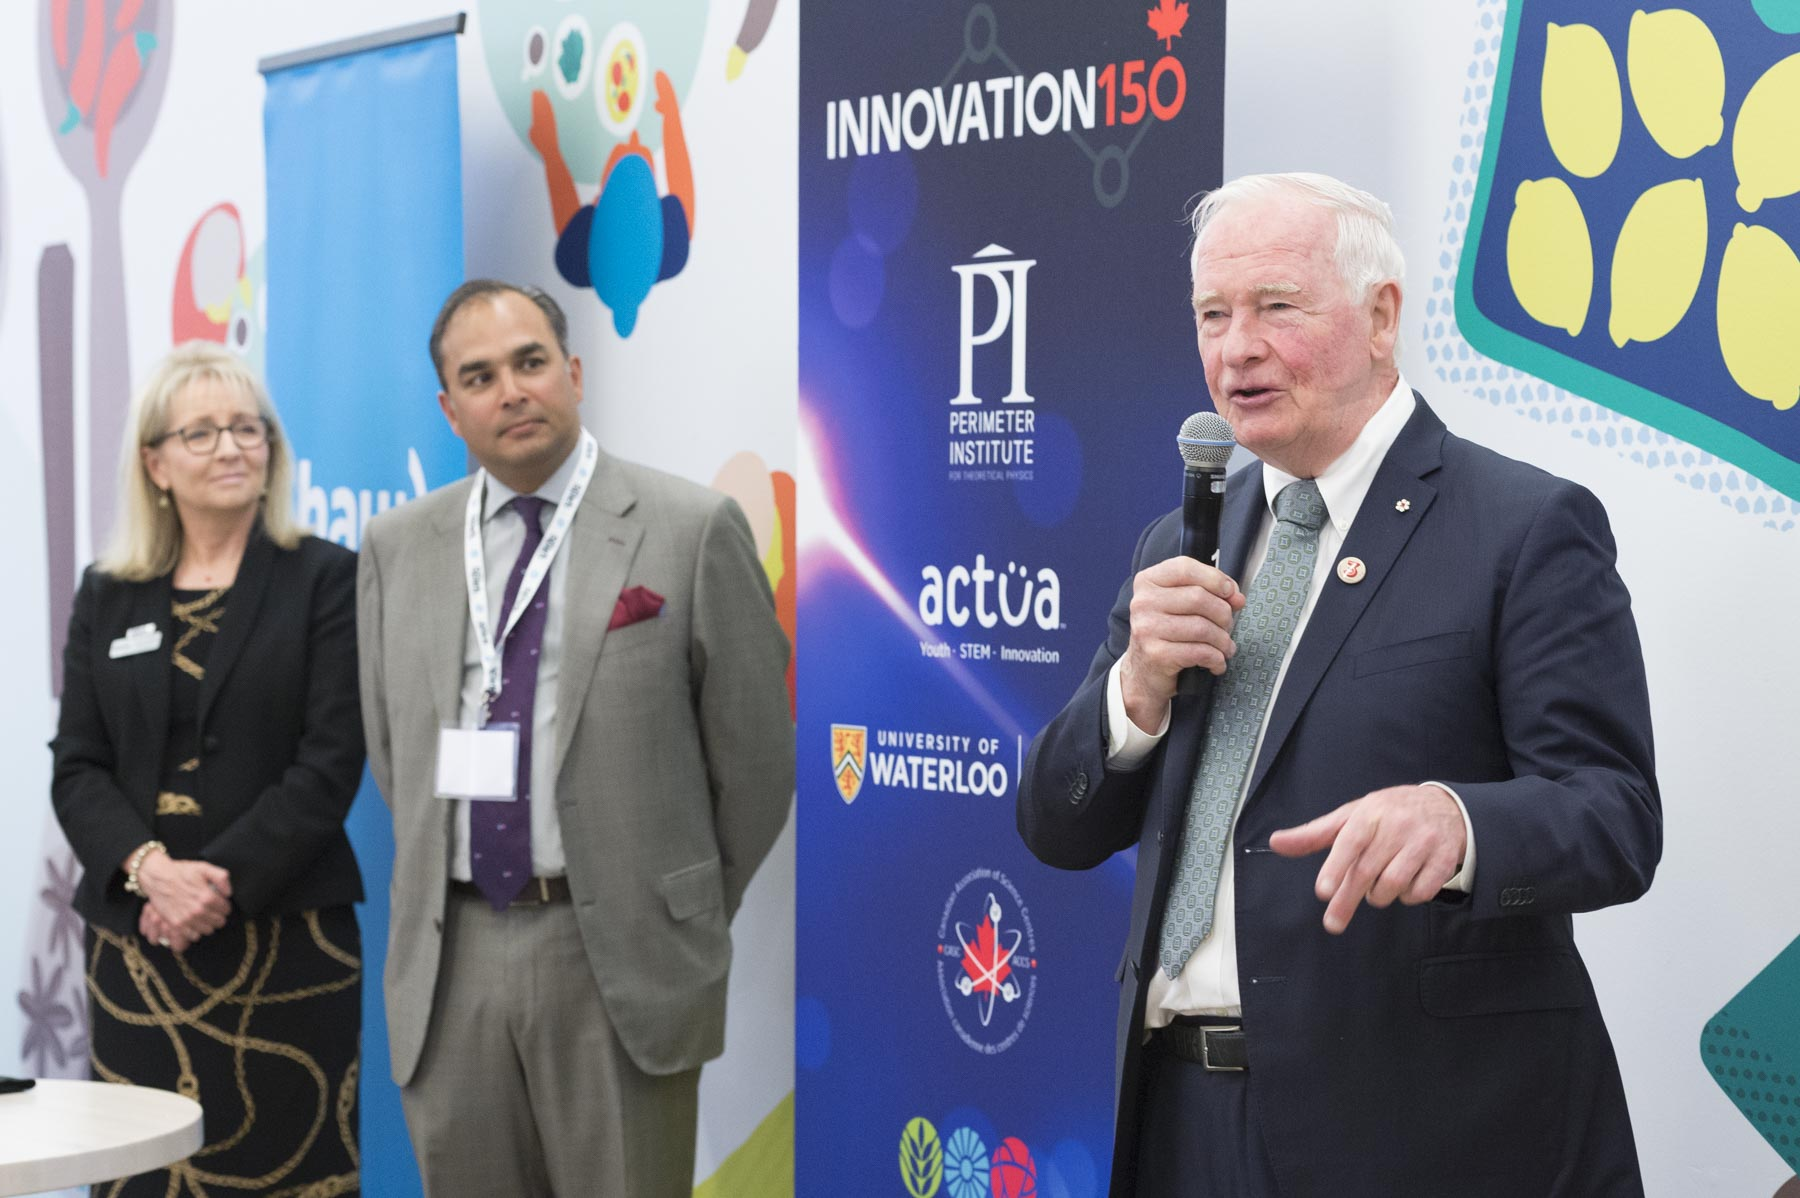 On the final day of his visit to Western Canada, His Excellency the Right Honourable David Johnston, Governor General of Canada, was TELUS Spark, Calgary's science centre, to visit Innovation150 Power of Ideas Tour Expo, on June 7, 2017.